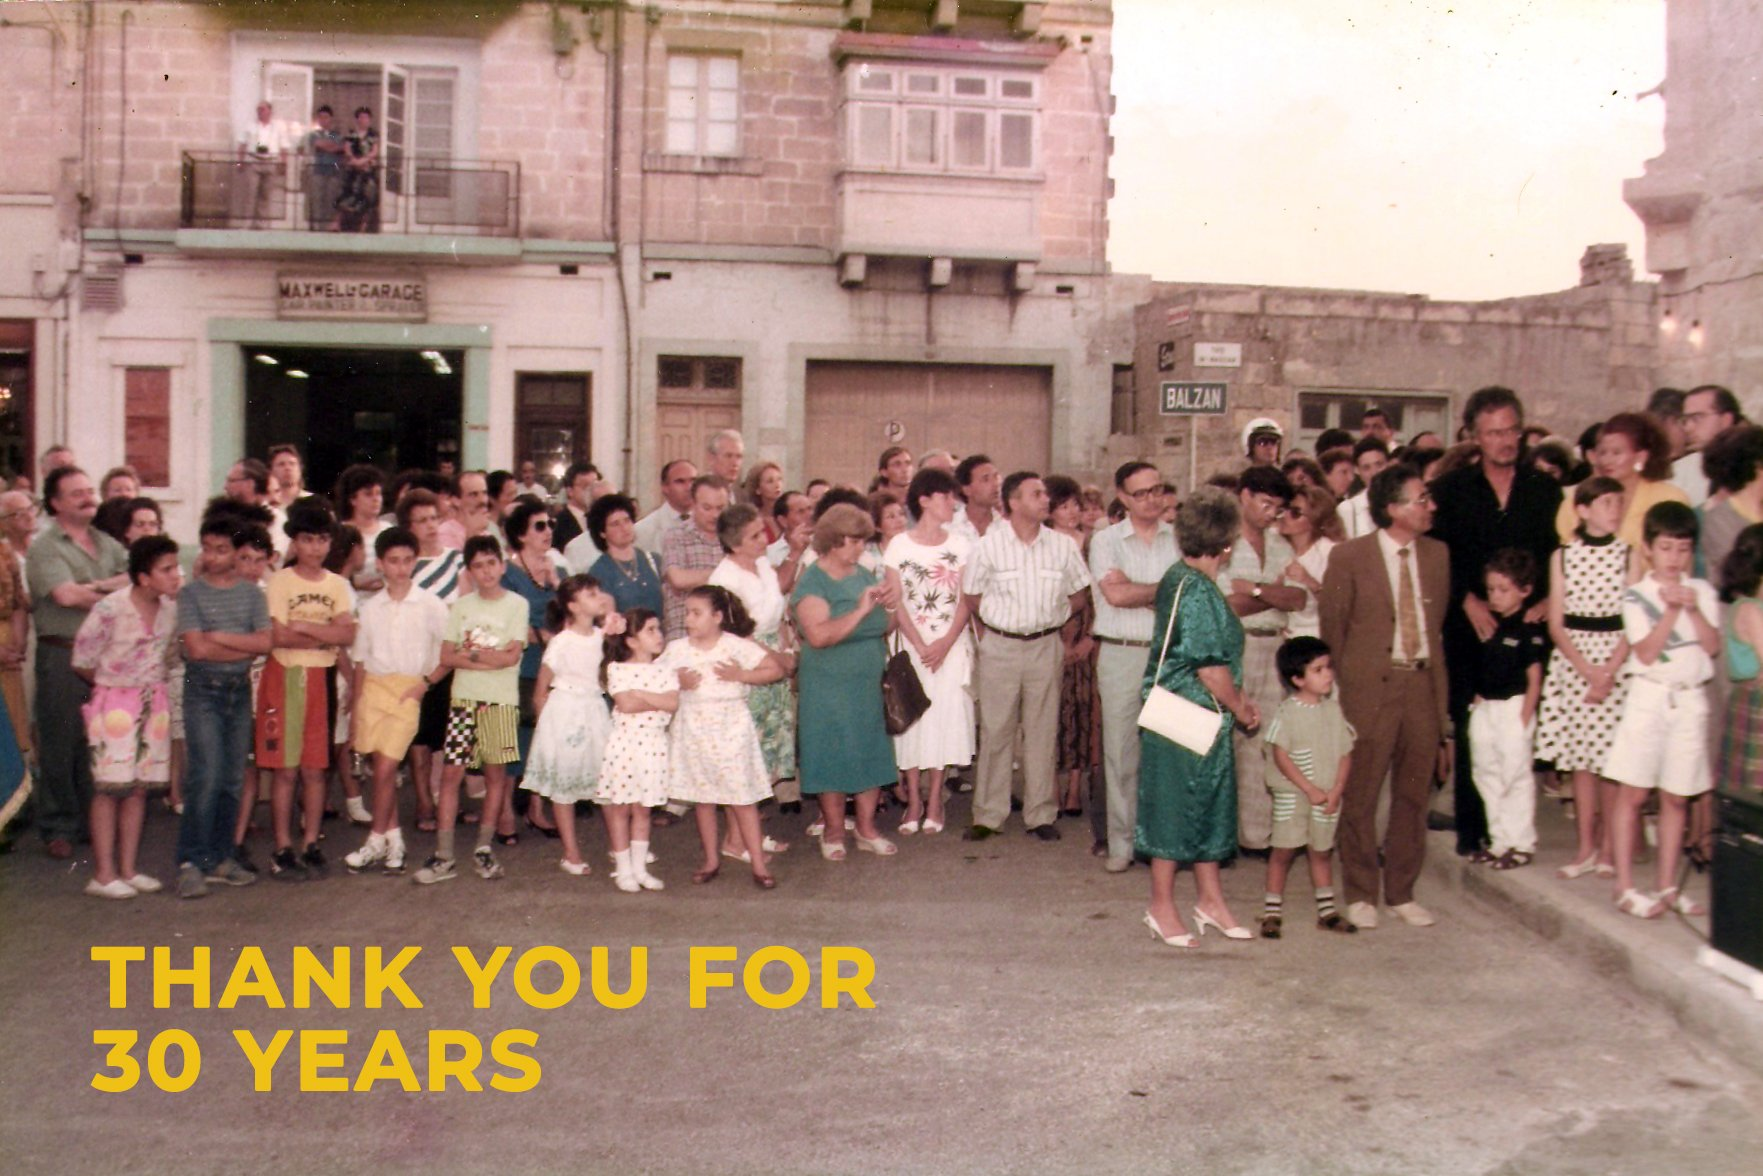 People gathered at The Mill opening on the 22nd of June 1990. At the bottom left hand corner text in yellow 'Thank you for 30 Years'.